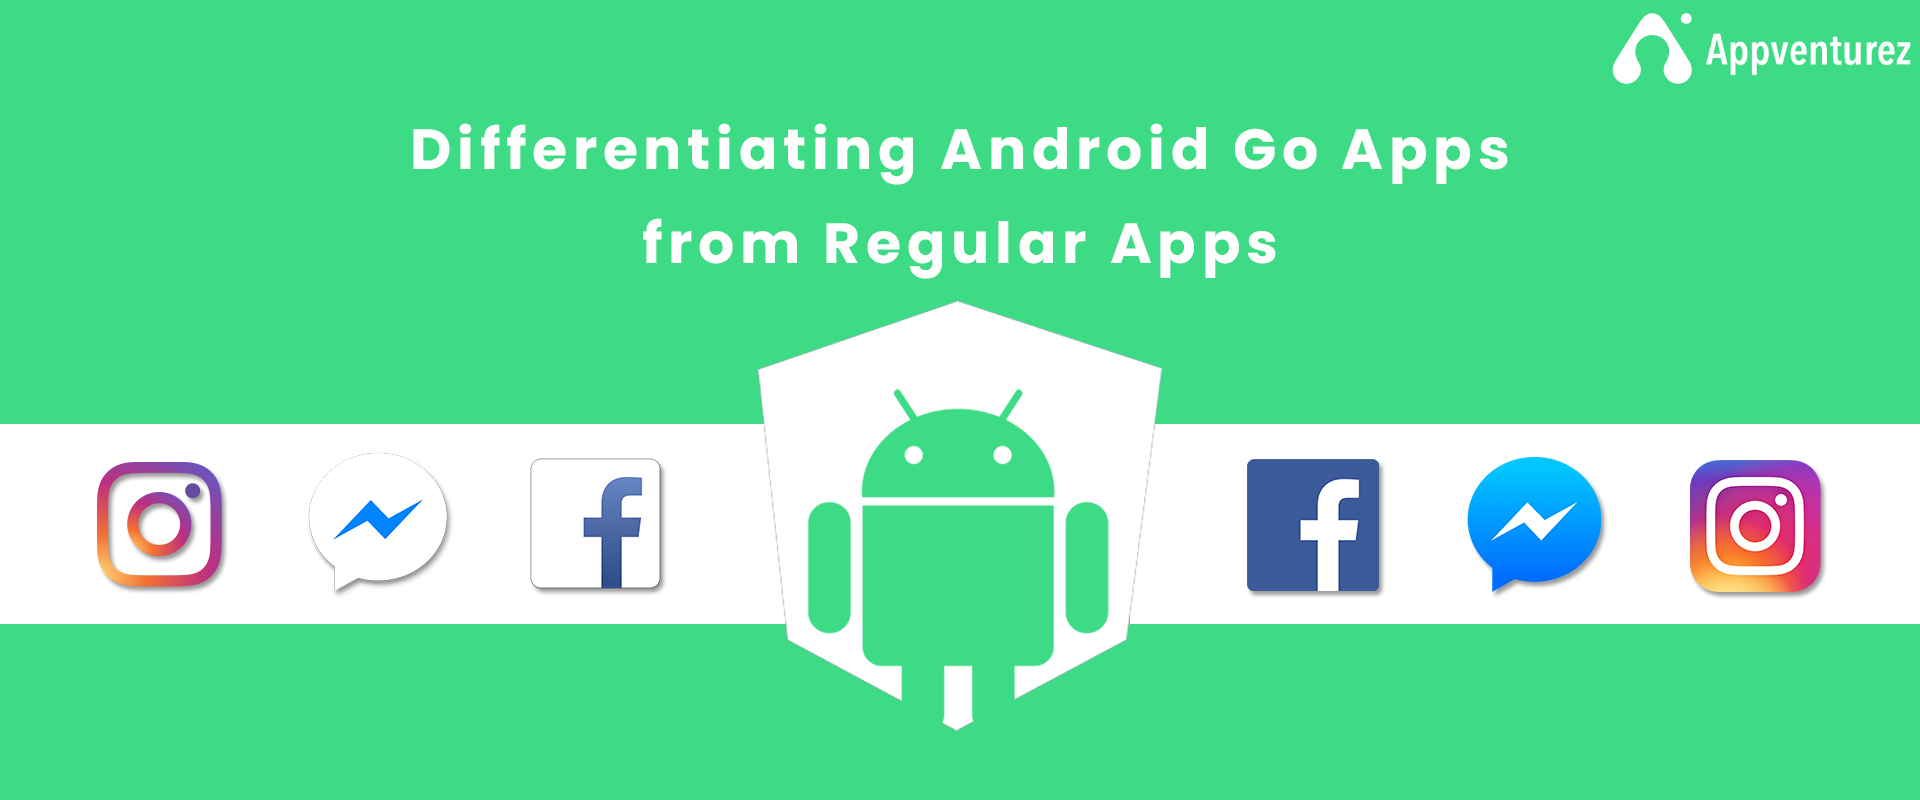 android go apps vs regular apps